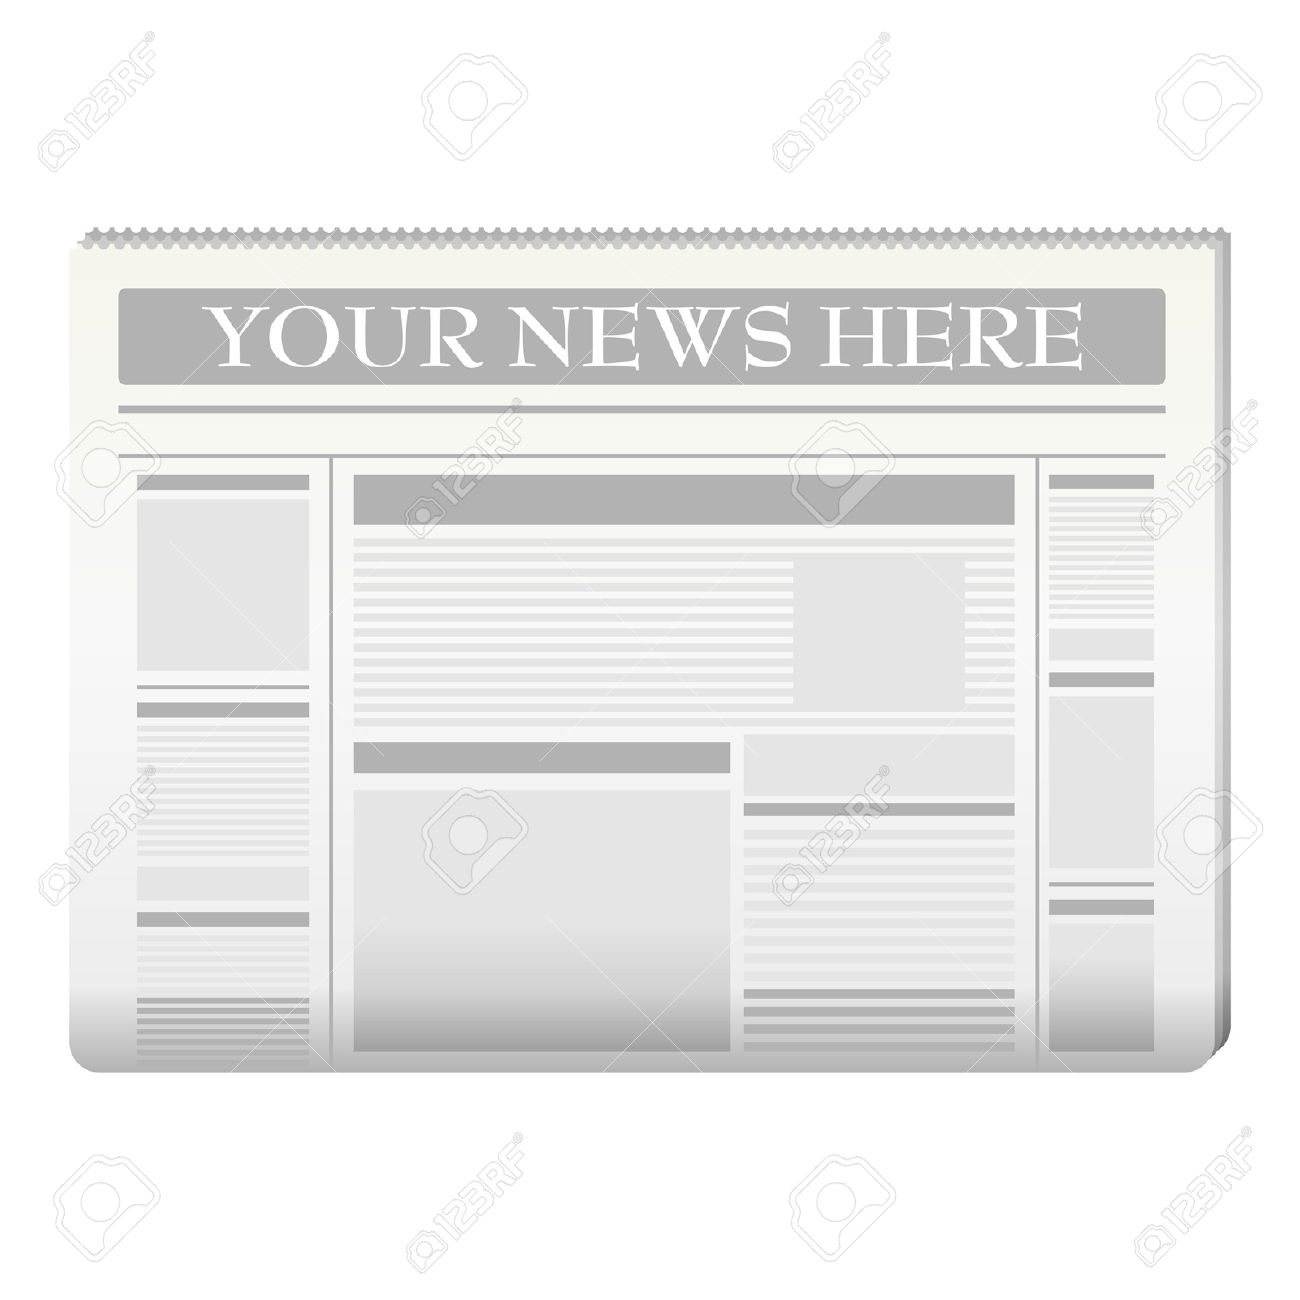 Newspaper Template To Your Own News Over White Ilustraciones ...